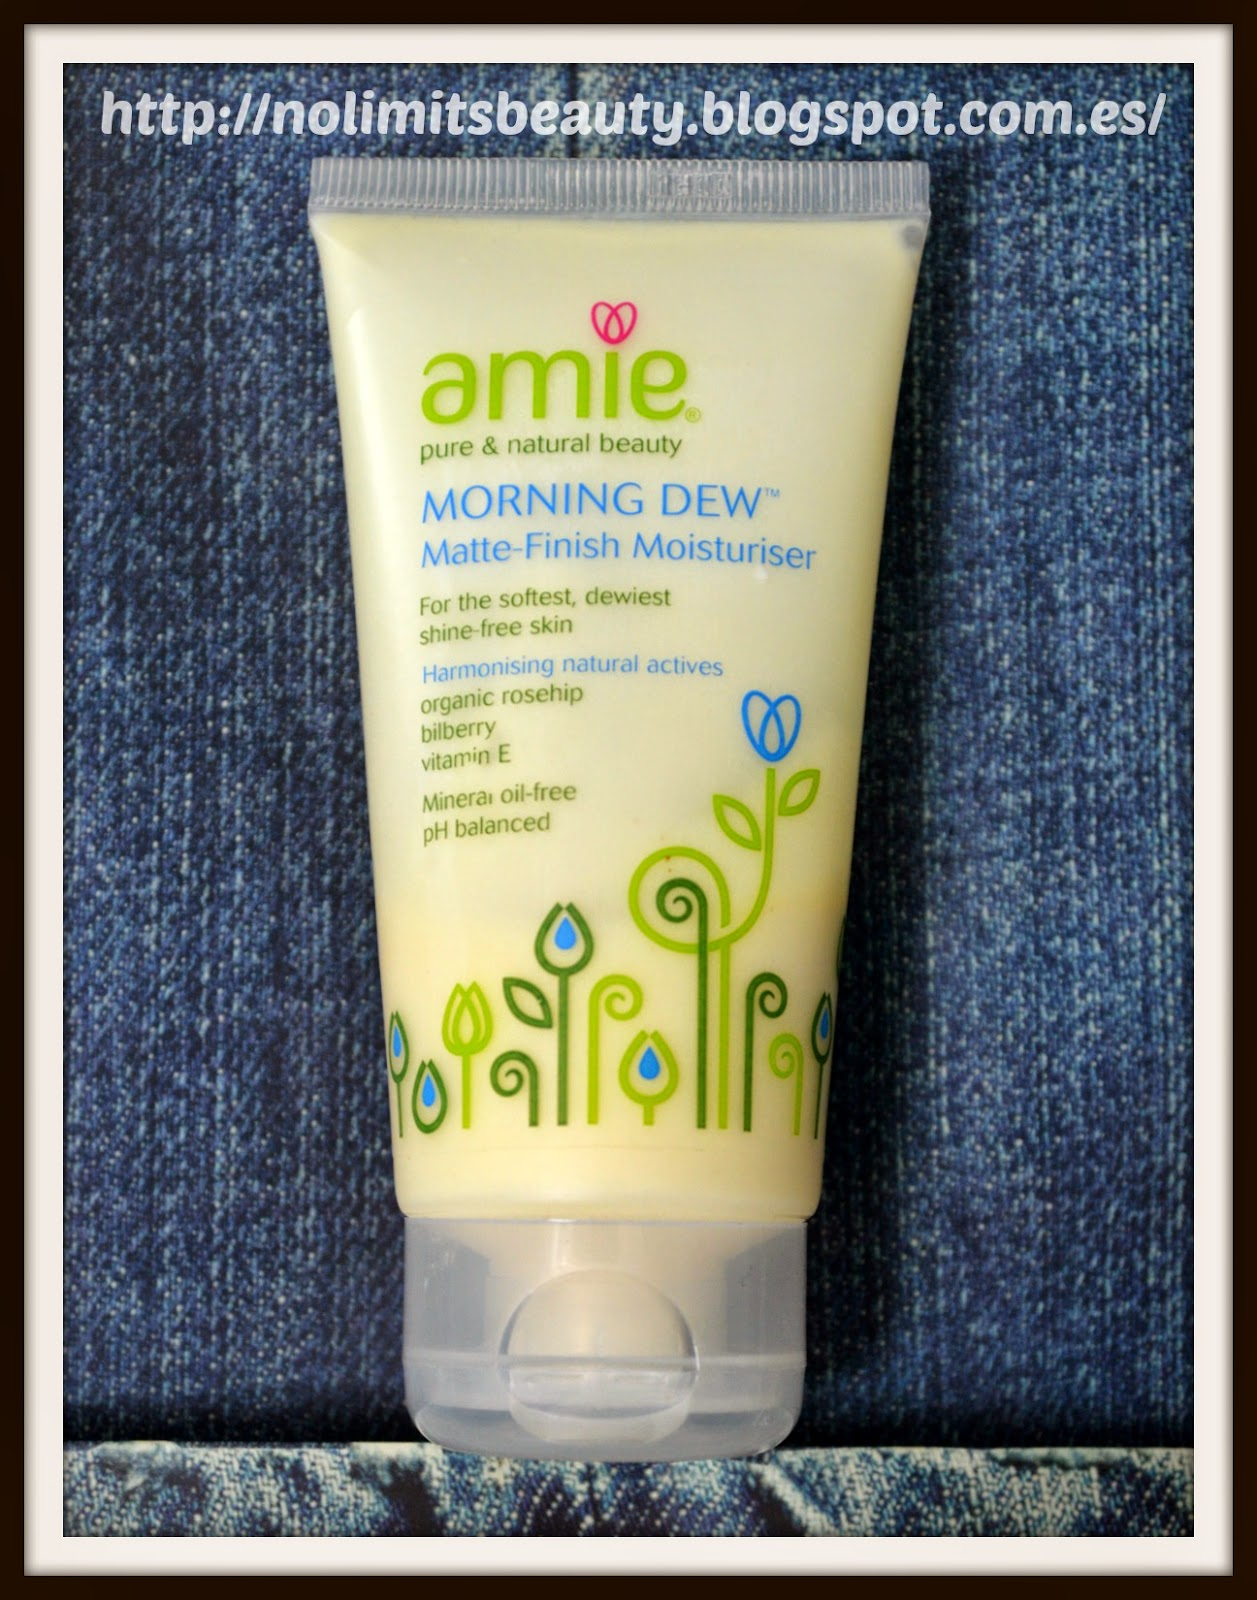 Amie Morning Dew - Matte Finish Moisturiser (review)